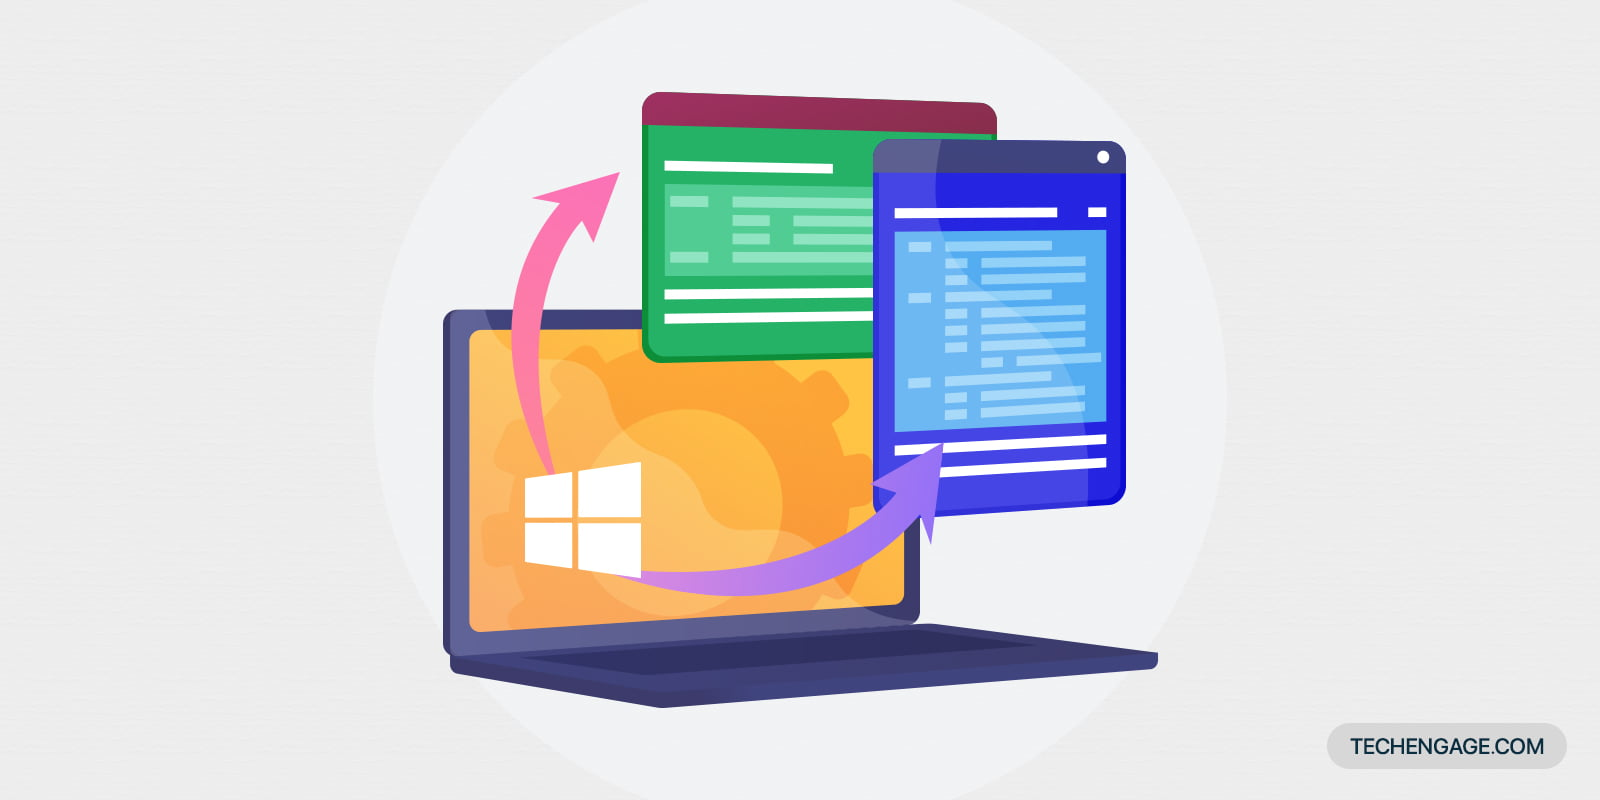 An icon of laptop featuring Windows OS with applications popping out of the screen